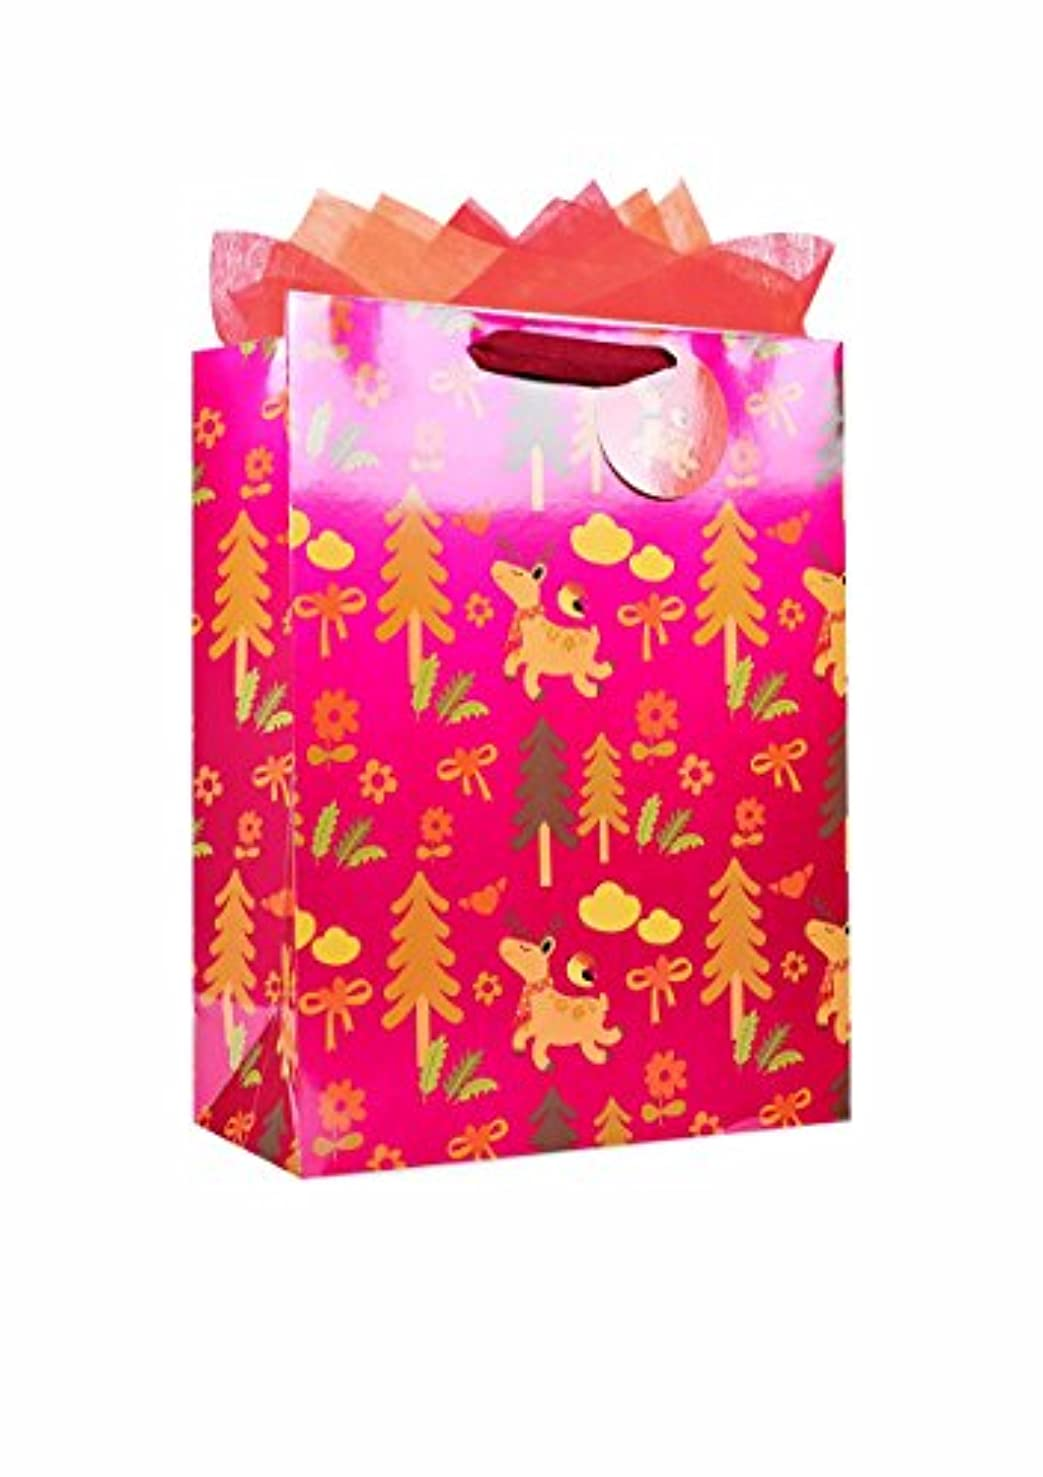 The Wrap It Metallic Premium Party Favor Paper Gift Bag with Handle, Design for Party, Valentine's Day, Birthday, Wedding, Christmas, X-Large, Fatty Deer Red, Set of 6 (Vertical)